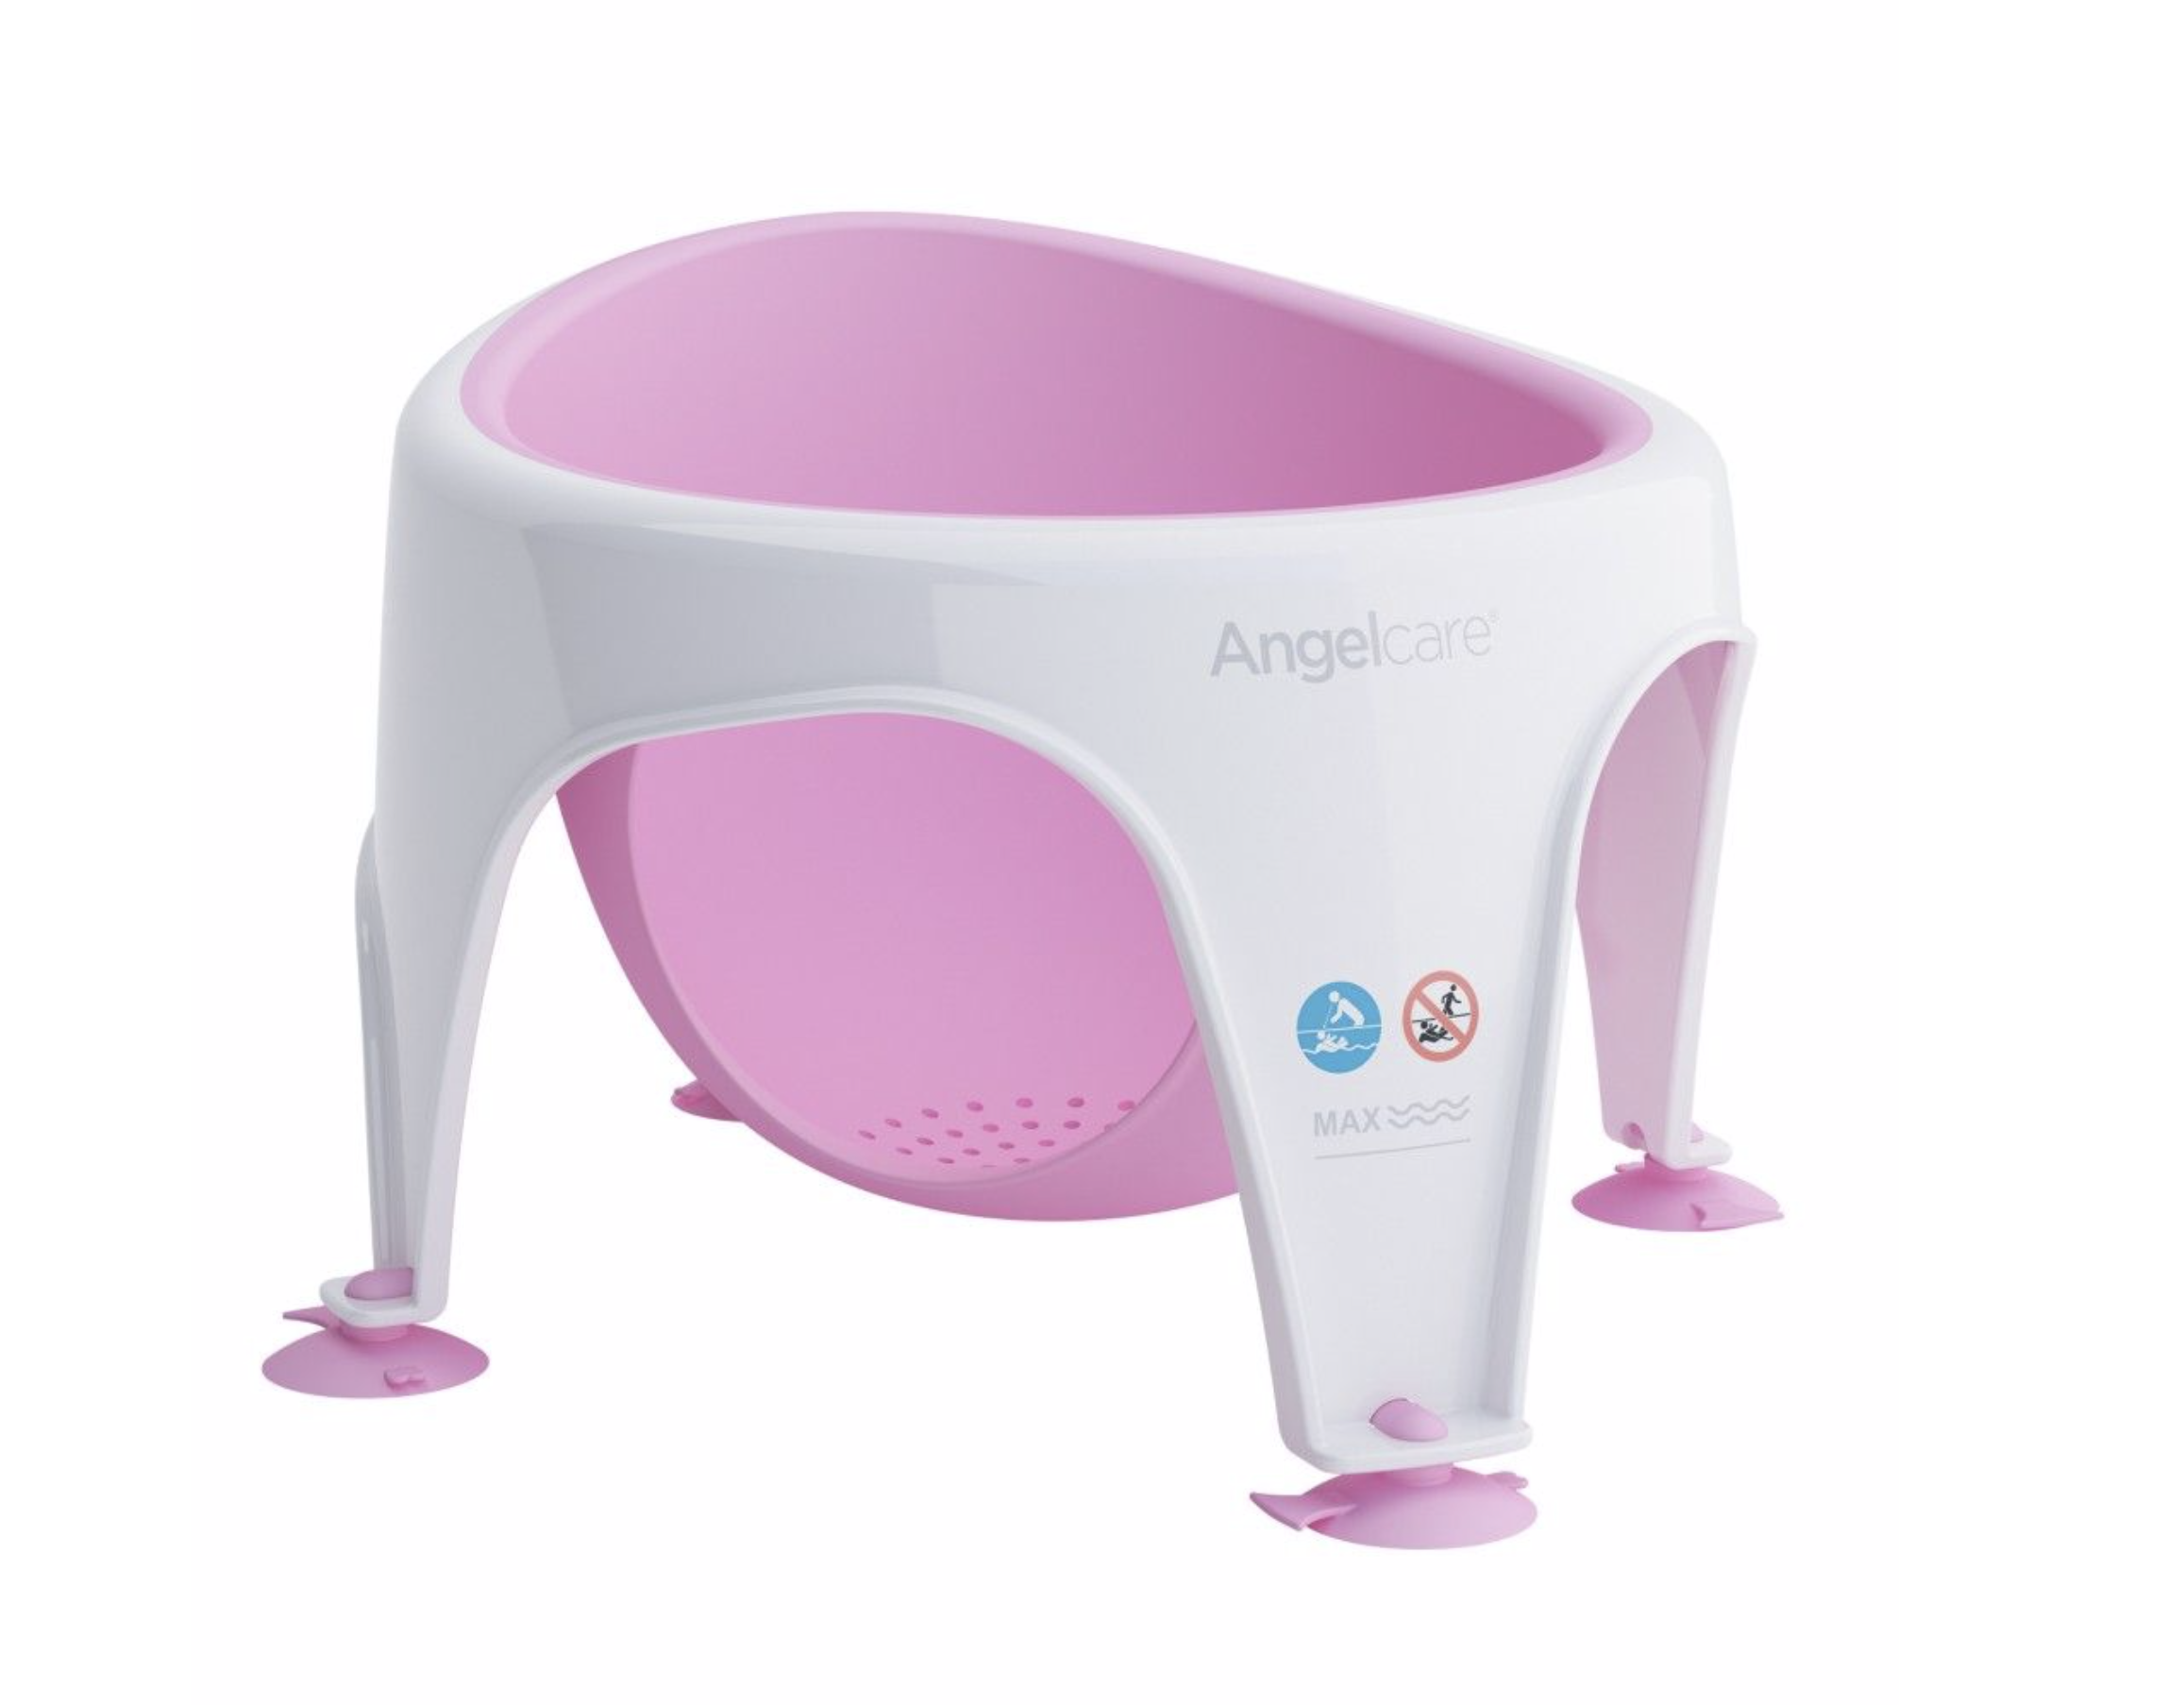 Angel Care Soft Touch Baby Bath Seat Baby Care Online